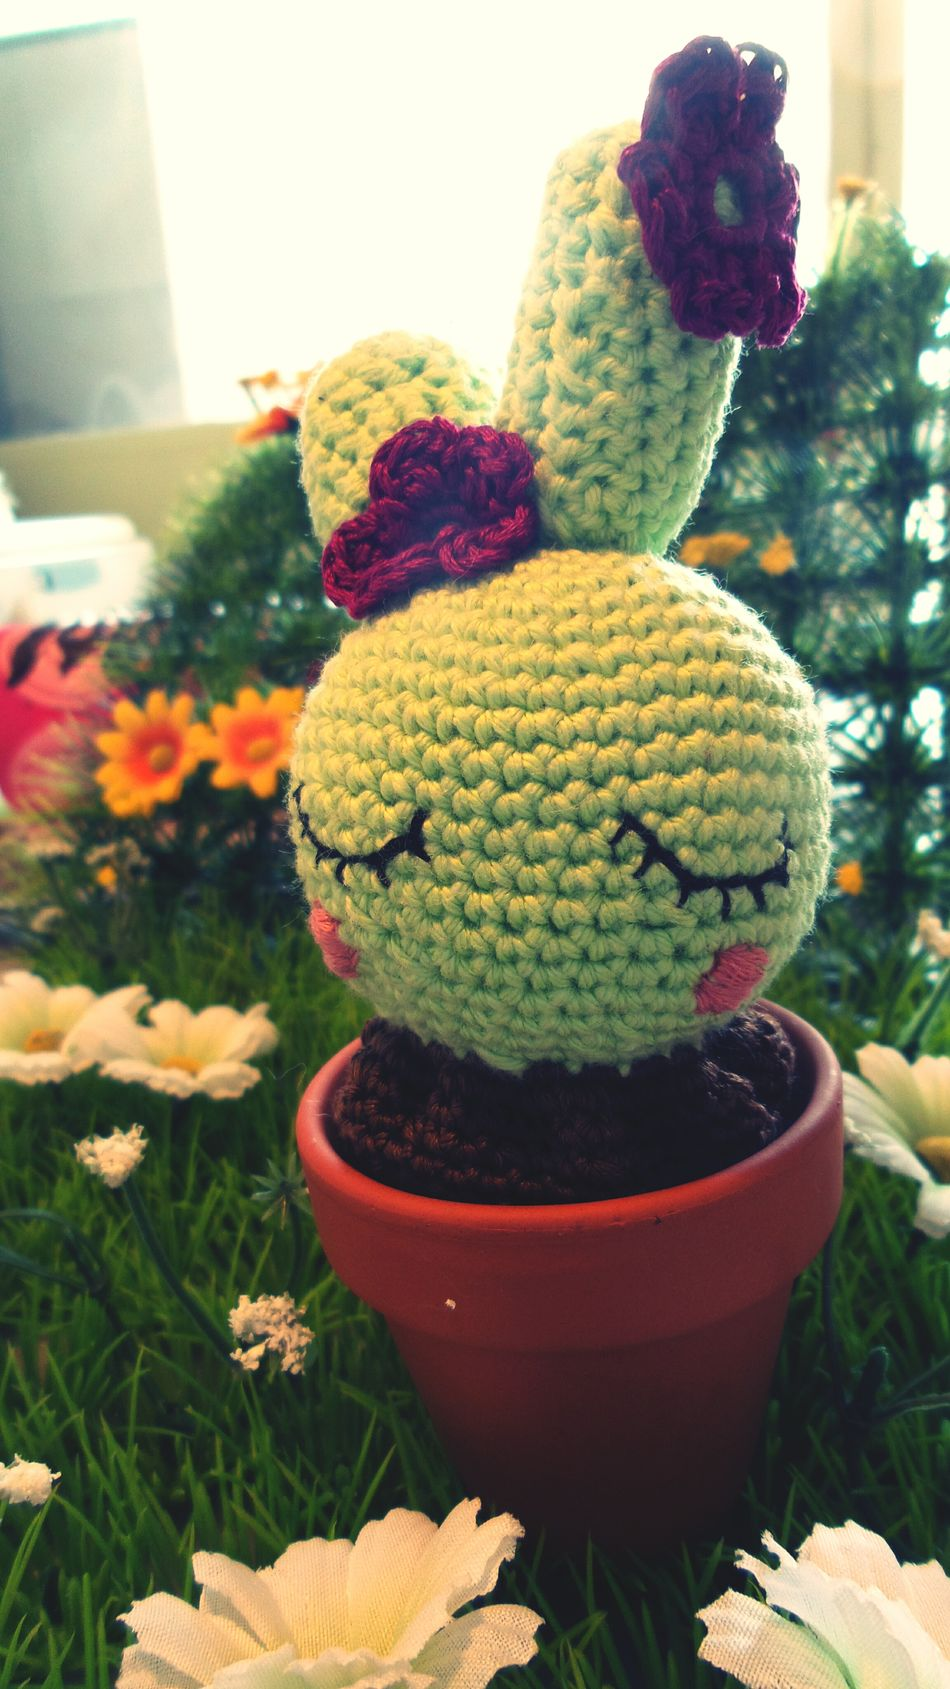 petit cactus kawaii réalisé au crochet par ma femme aux doigts de fée ☺ an amigurumi crochet kawaii cactus made by my wonderful wife ☺ Made By A Fairy KAWAII Amigurumi Crochet Crochetobsessed Cactus Handmade Amigurumist Creative Made With Passion